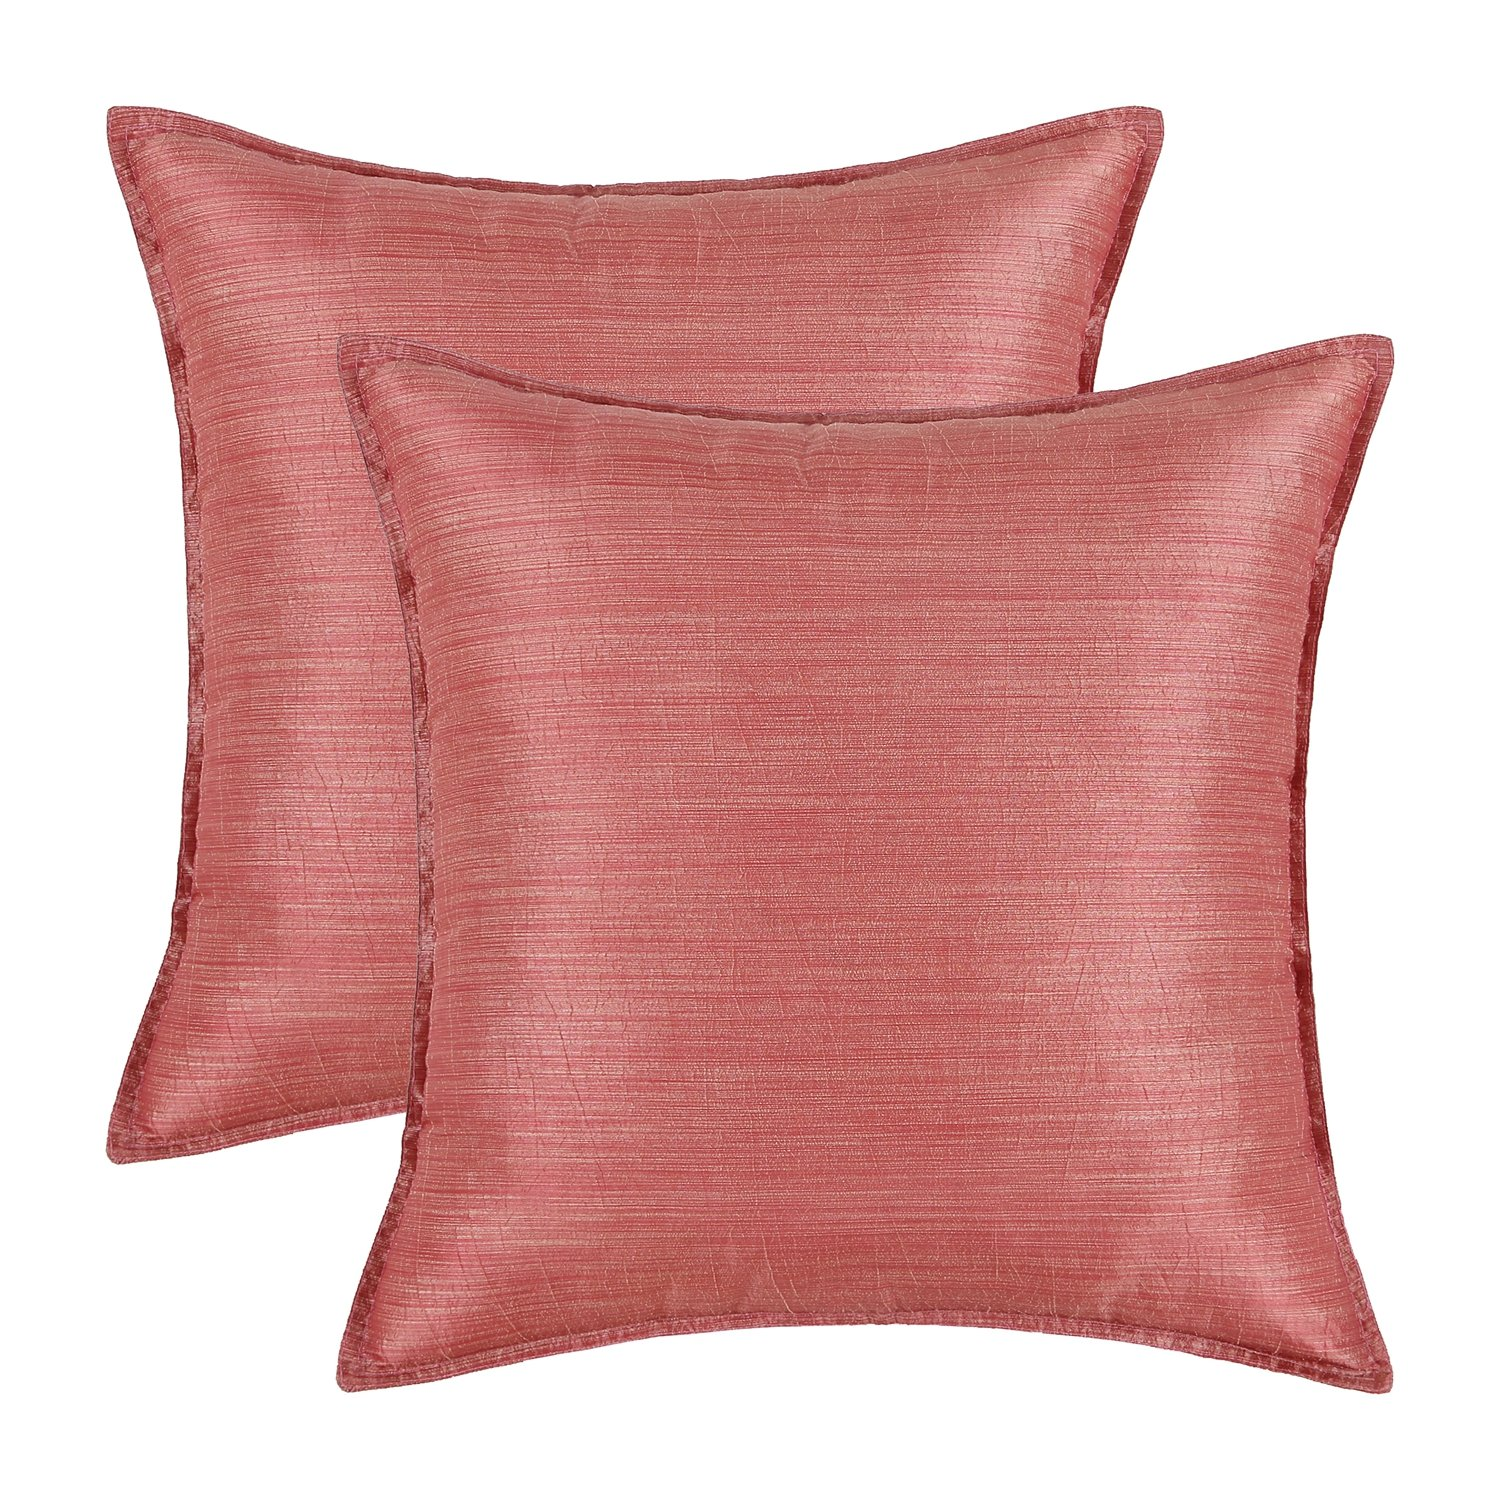 Pack of 2, CaliTime Silky Throw Pillow Covers Cases for Couch Sofa Bed, Modern Light Weight Dyed Striped, 18 X 18 Inches, Coral Pink